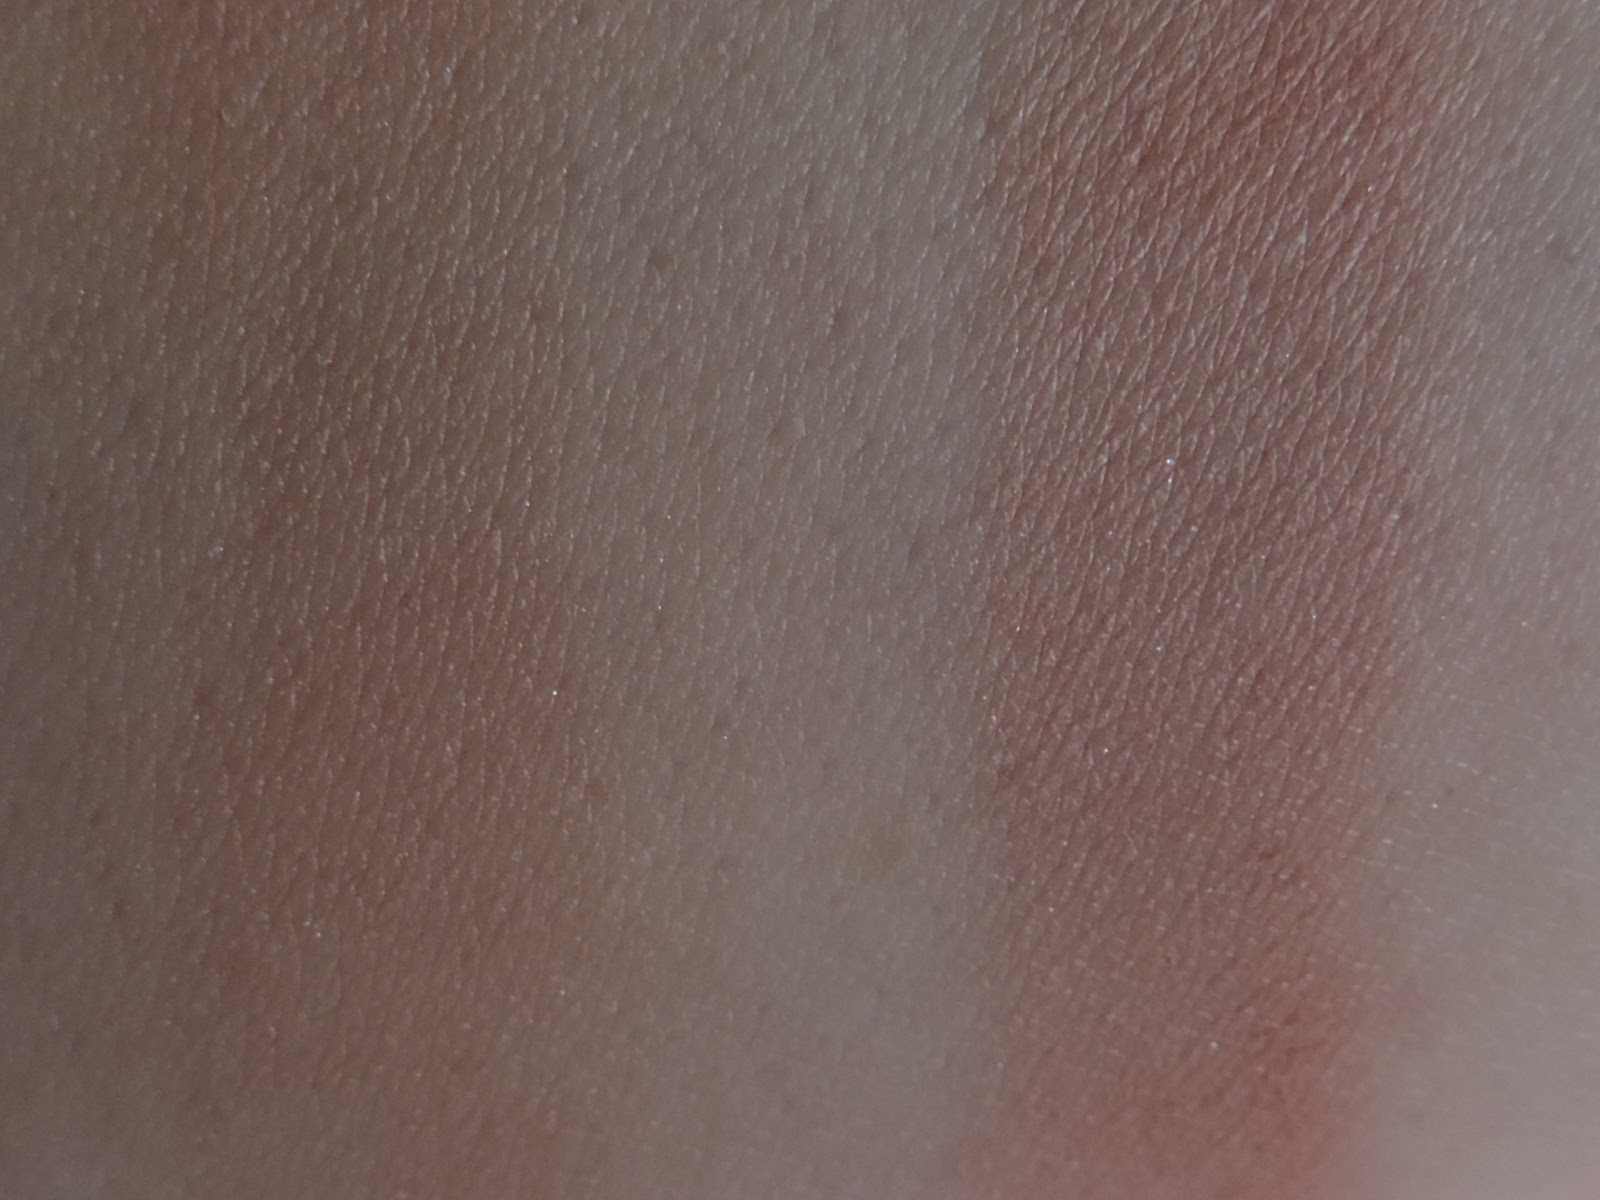 Swatches of Mood Exposure (left) blended out (right) single swipe